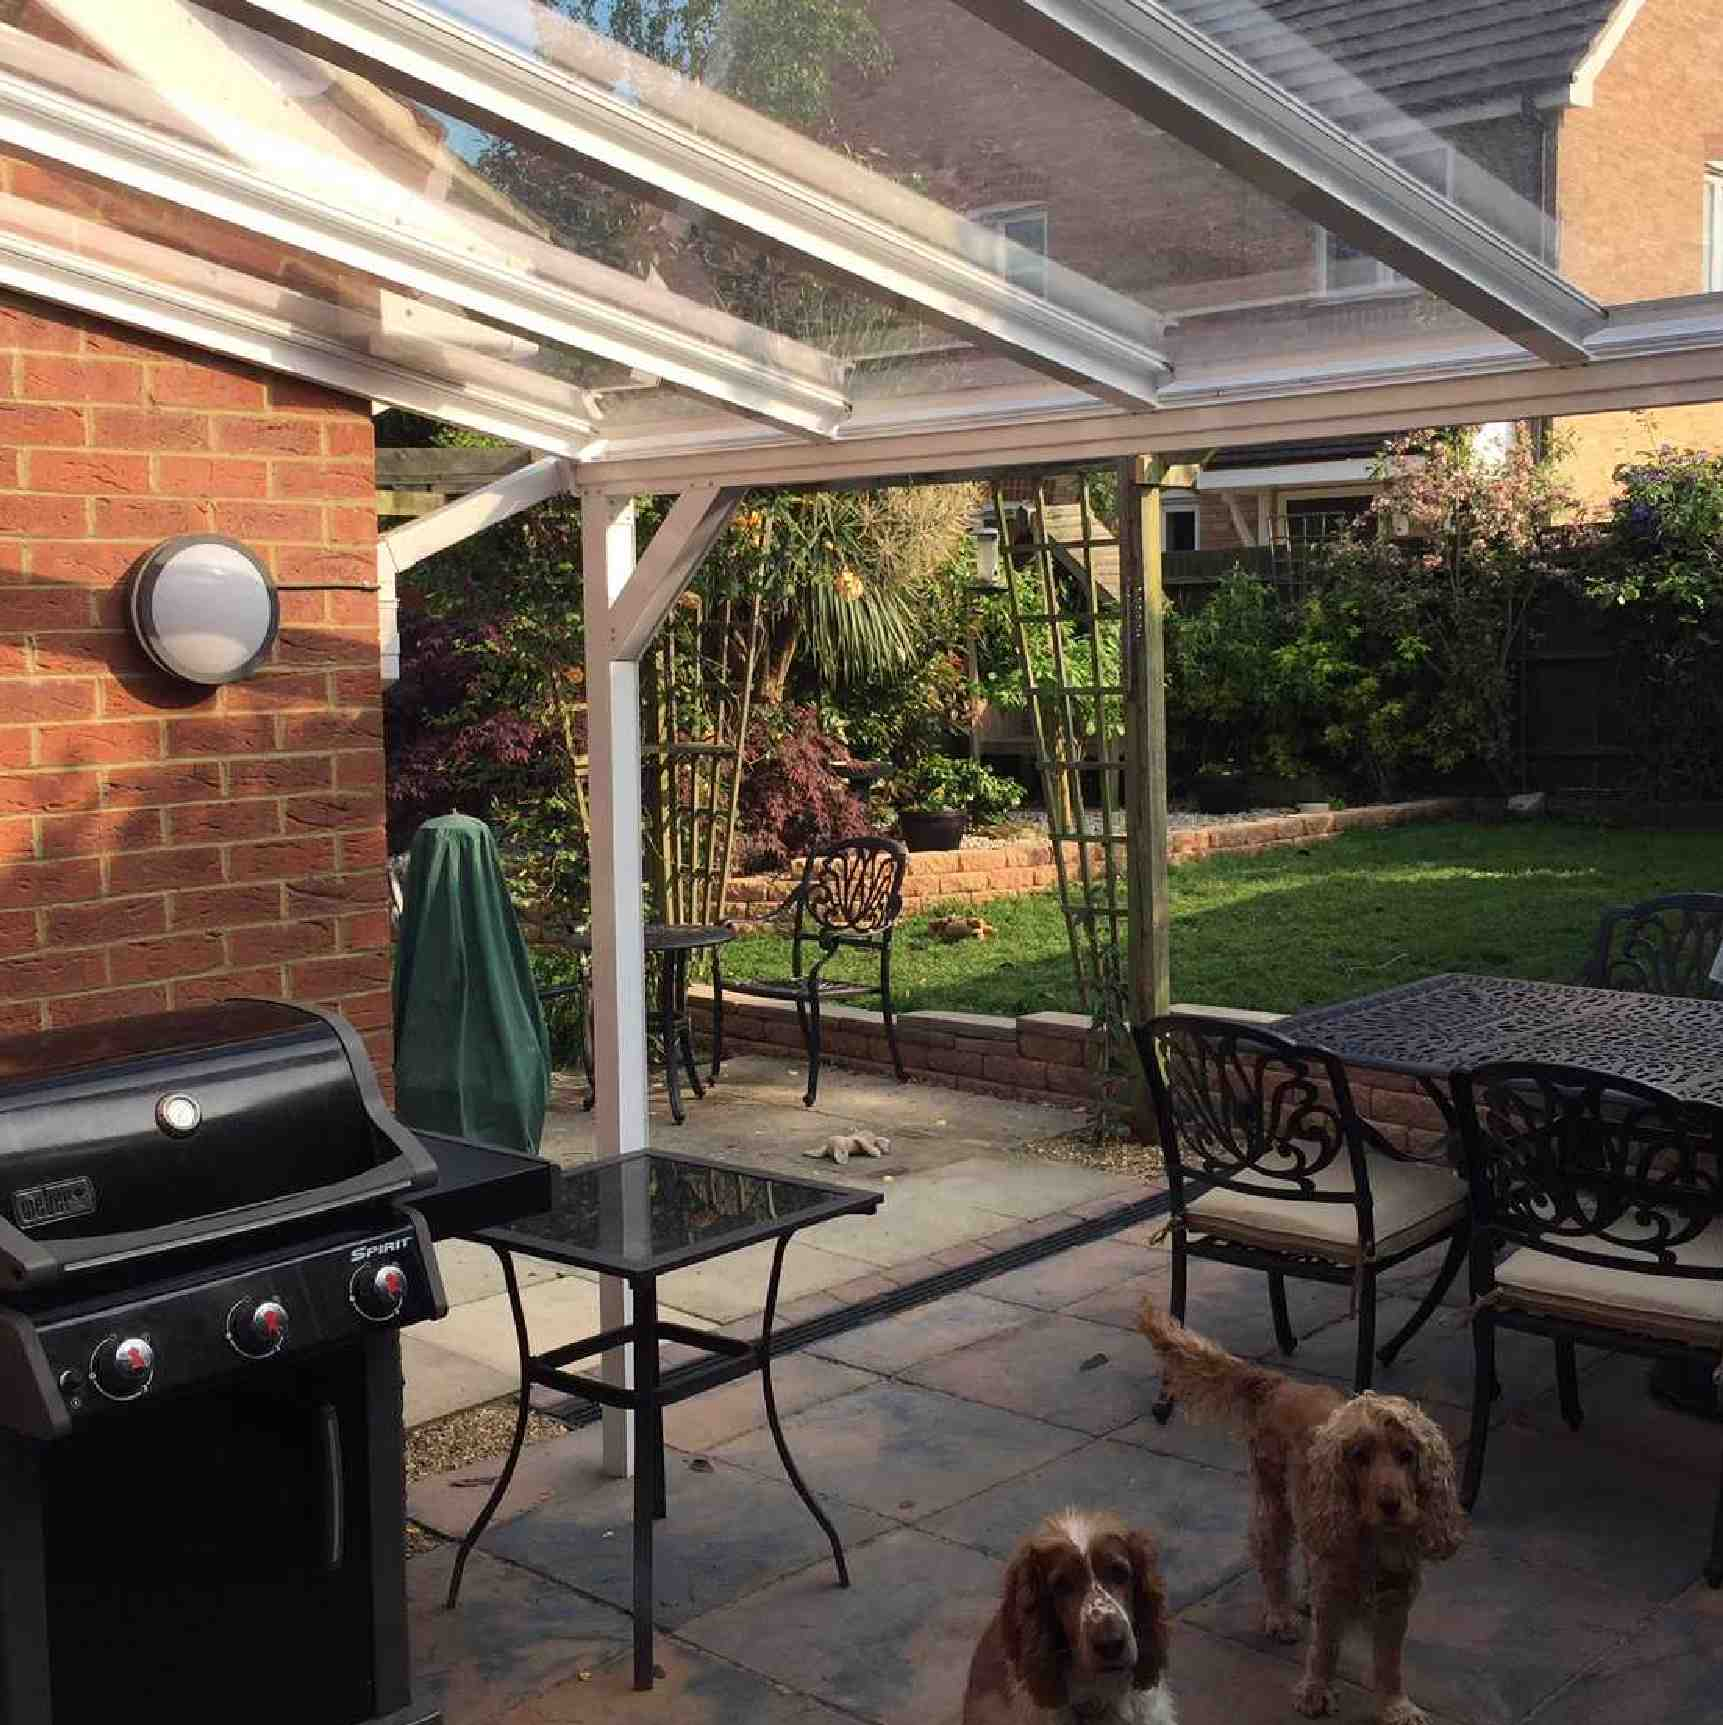 Omega Verandah with 16mm Polycarbonate Glazing - 11.4m (W) x 4.0m (P), (5) Supporting Posts